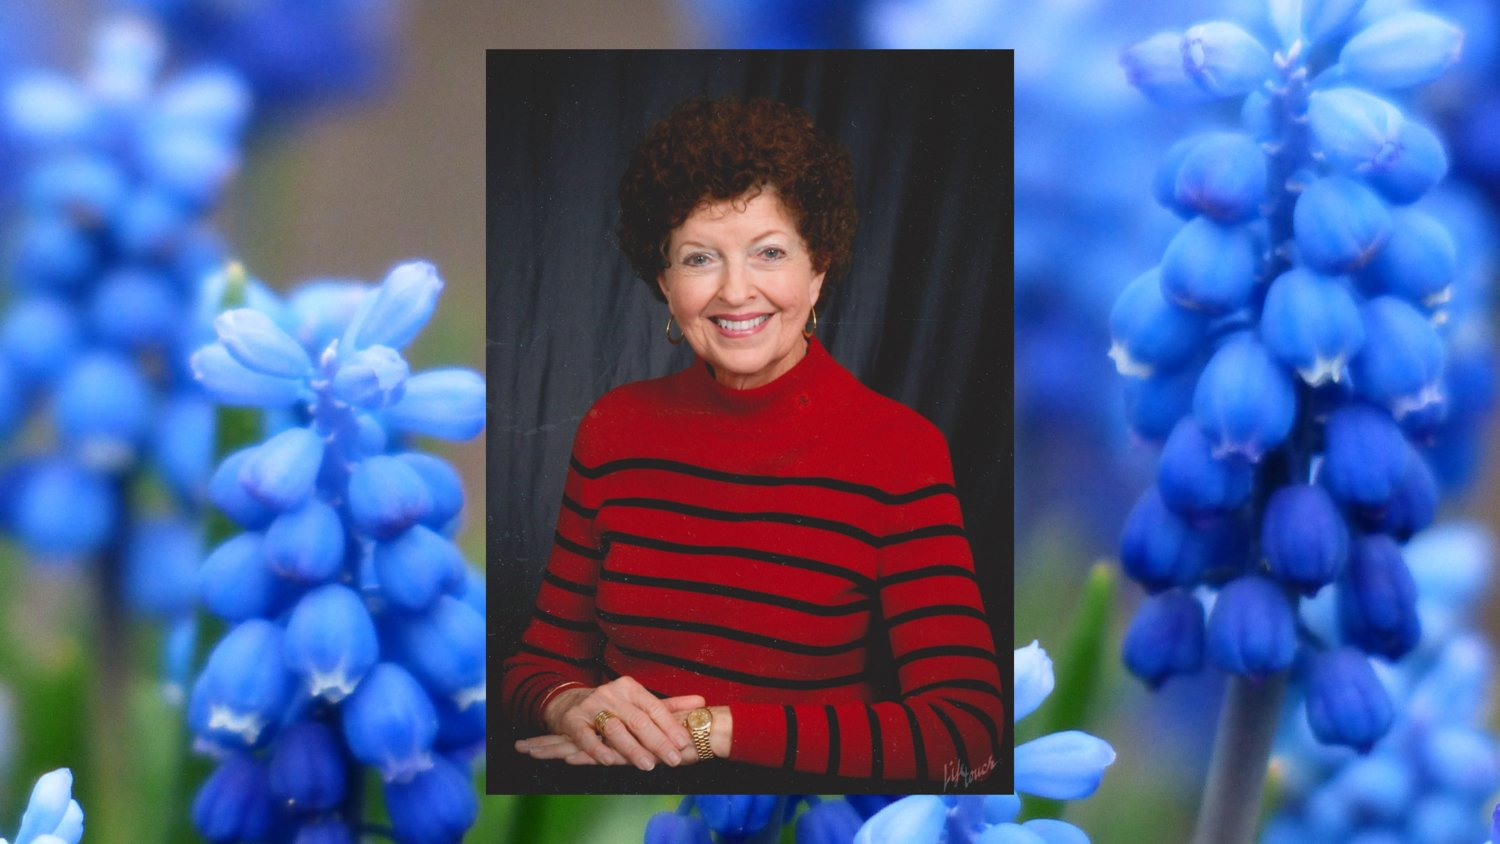 Joan Elizabeth Woods Watson passed Jan. 25 at the age of 75. She was a loving mom, grandma, nurse, rice farmer, cattle rancher and pilot. She was a lover of her family and animals and is truly missed by those that knew her.